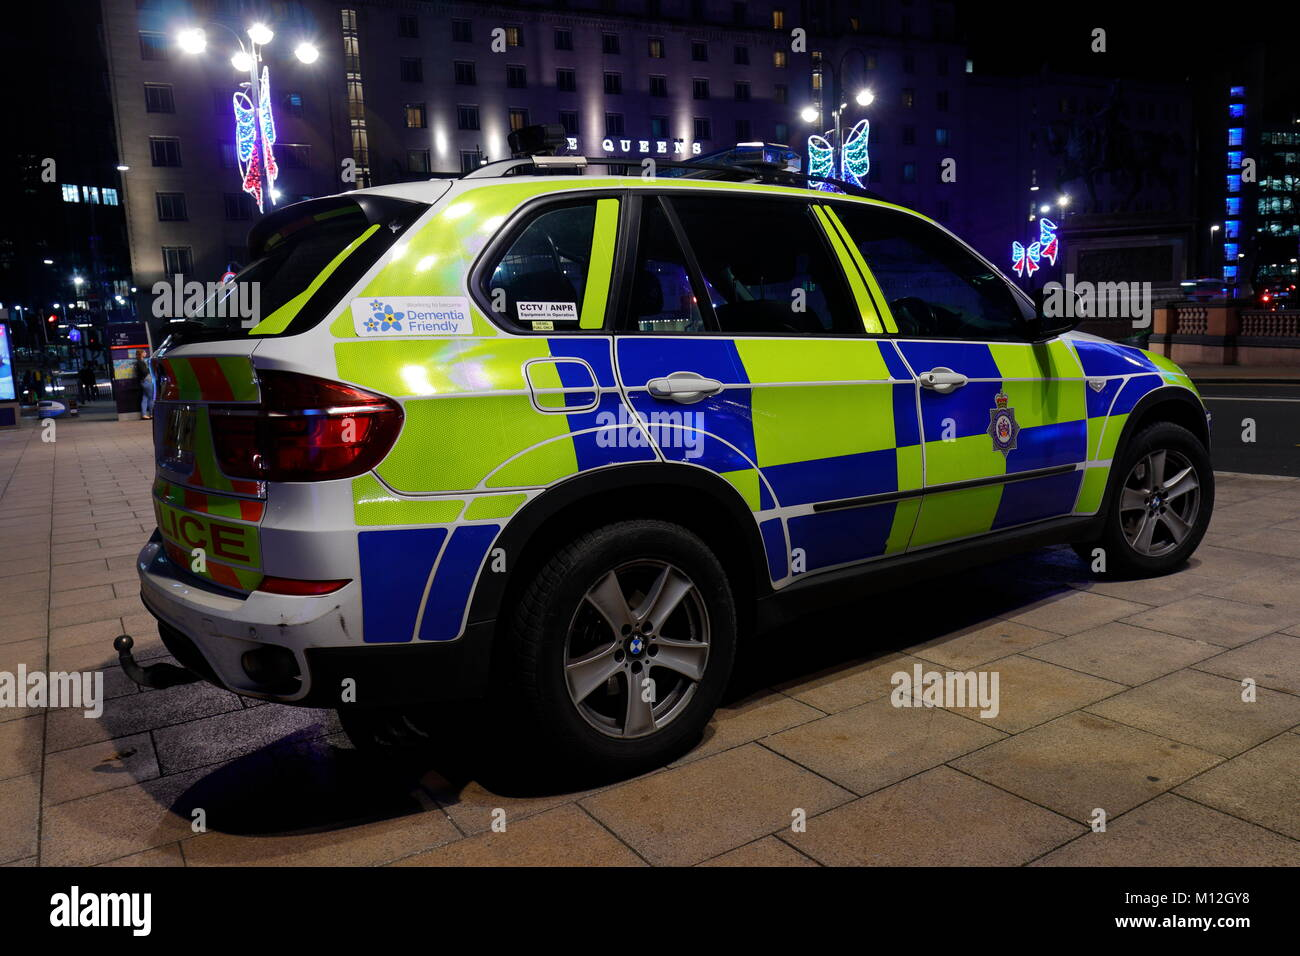 Police Car At Leeds City Square - Stock Image